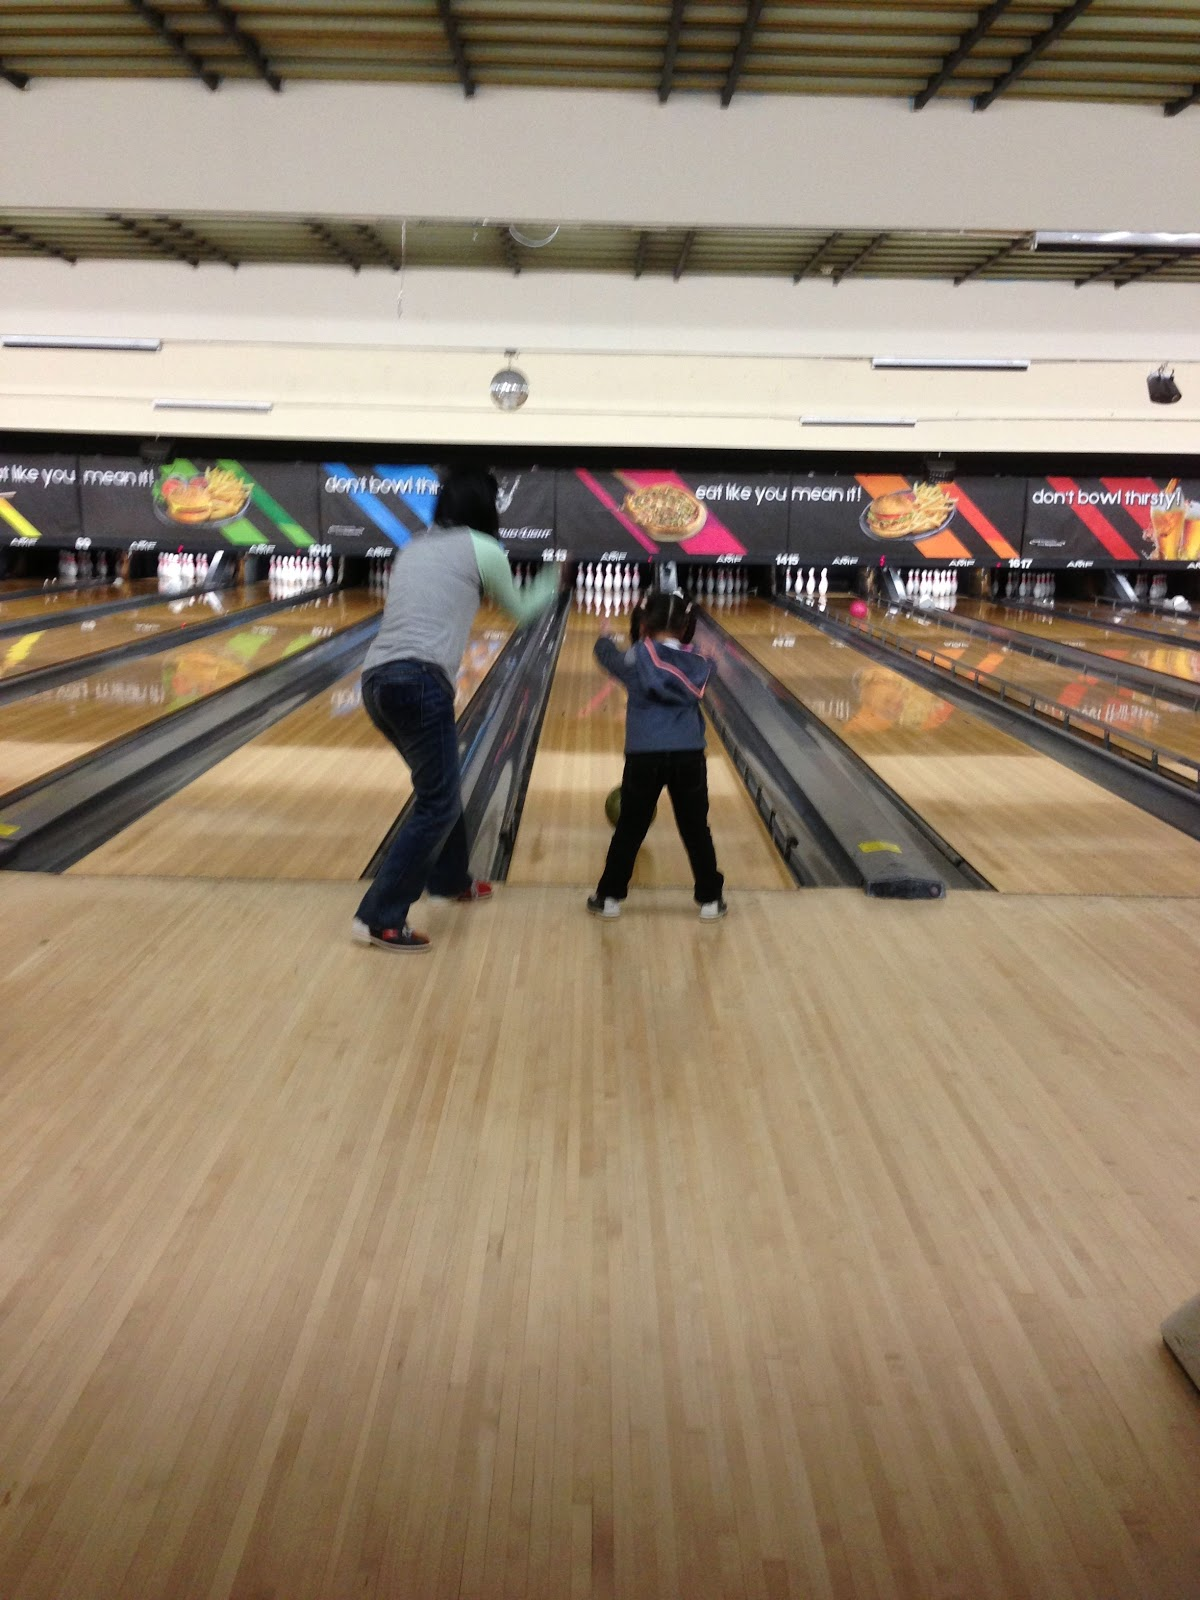 with the bumpers in place i helped her take the ball down the lane to bowl her very first frame